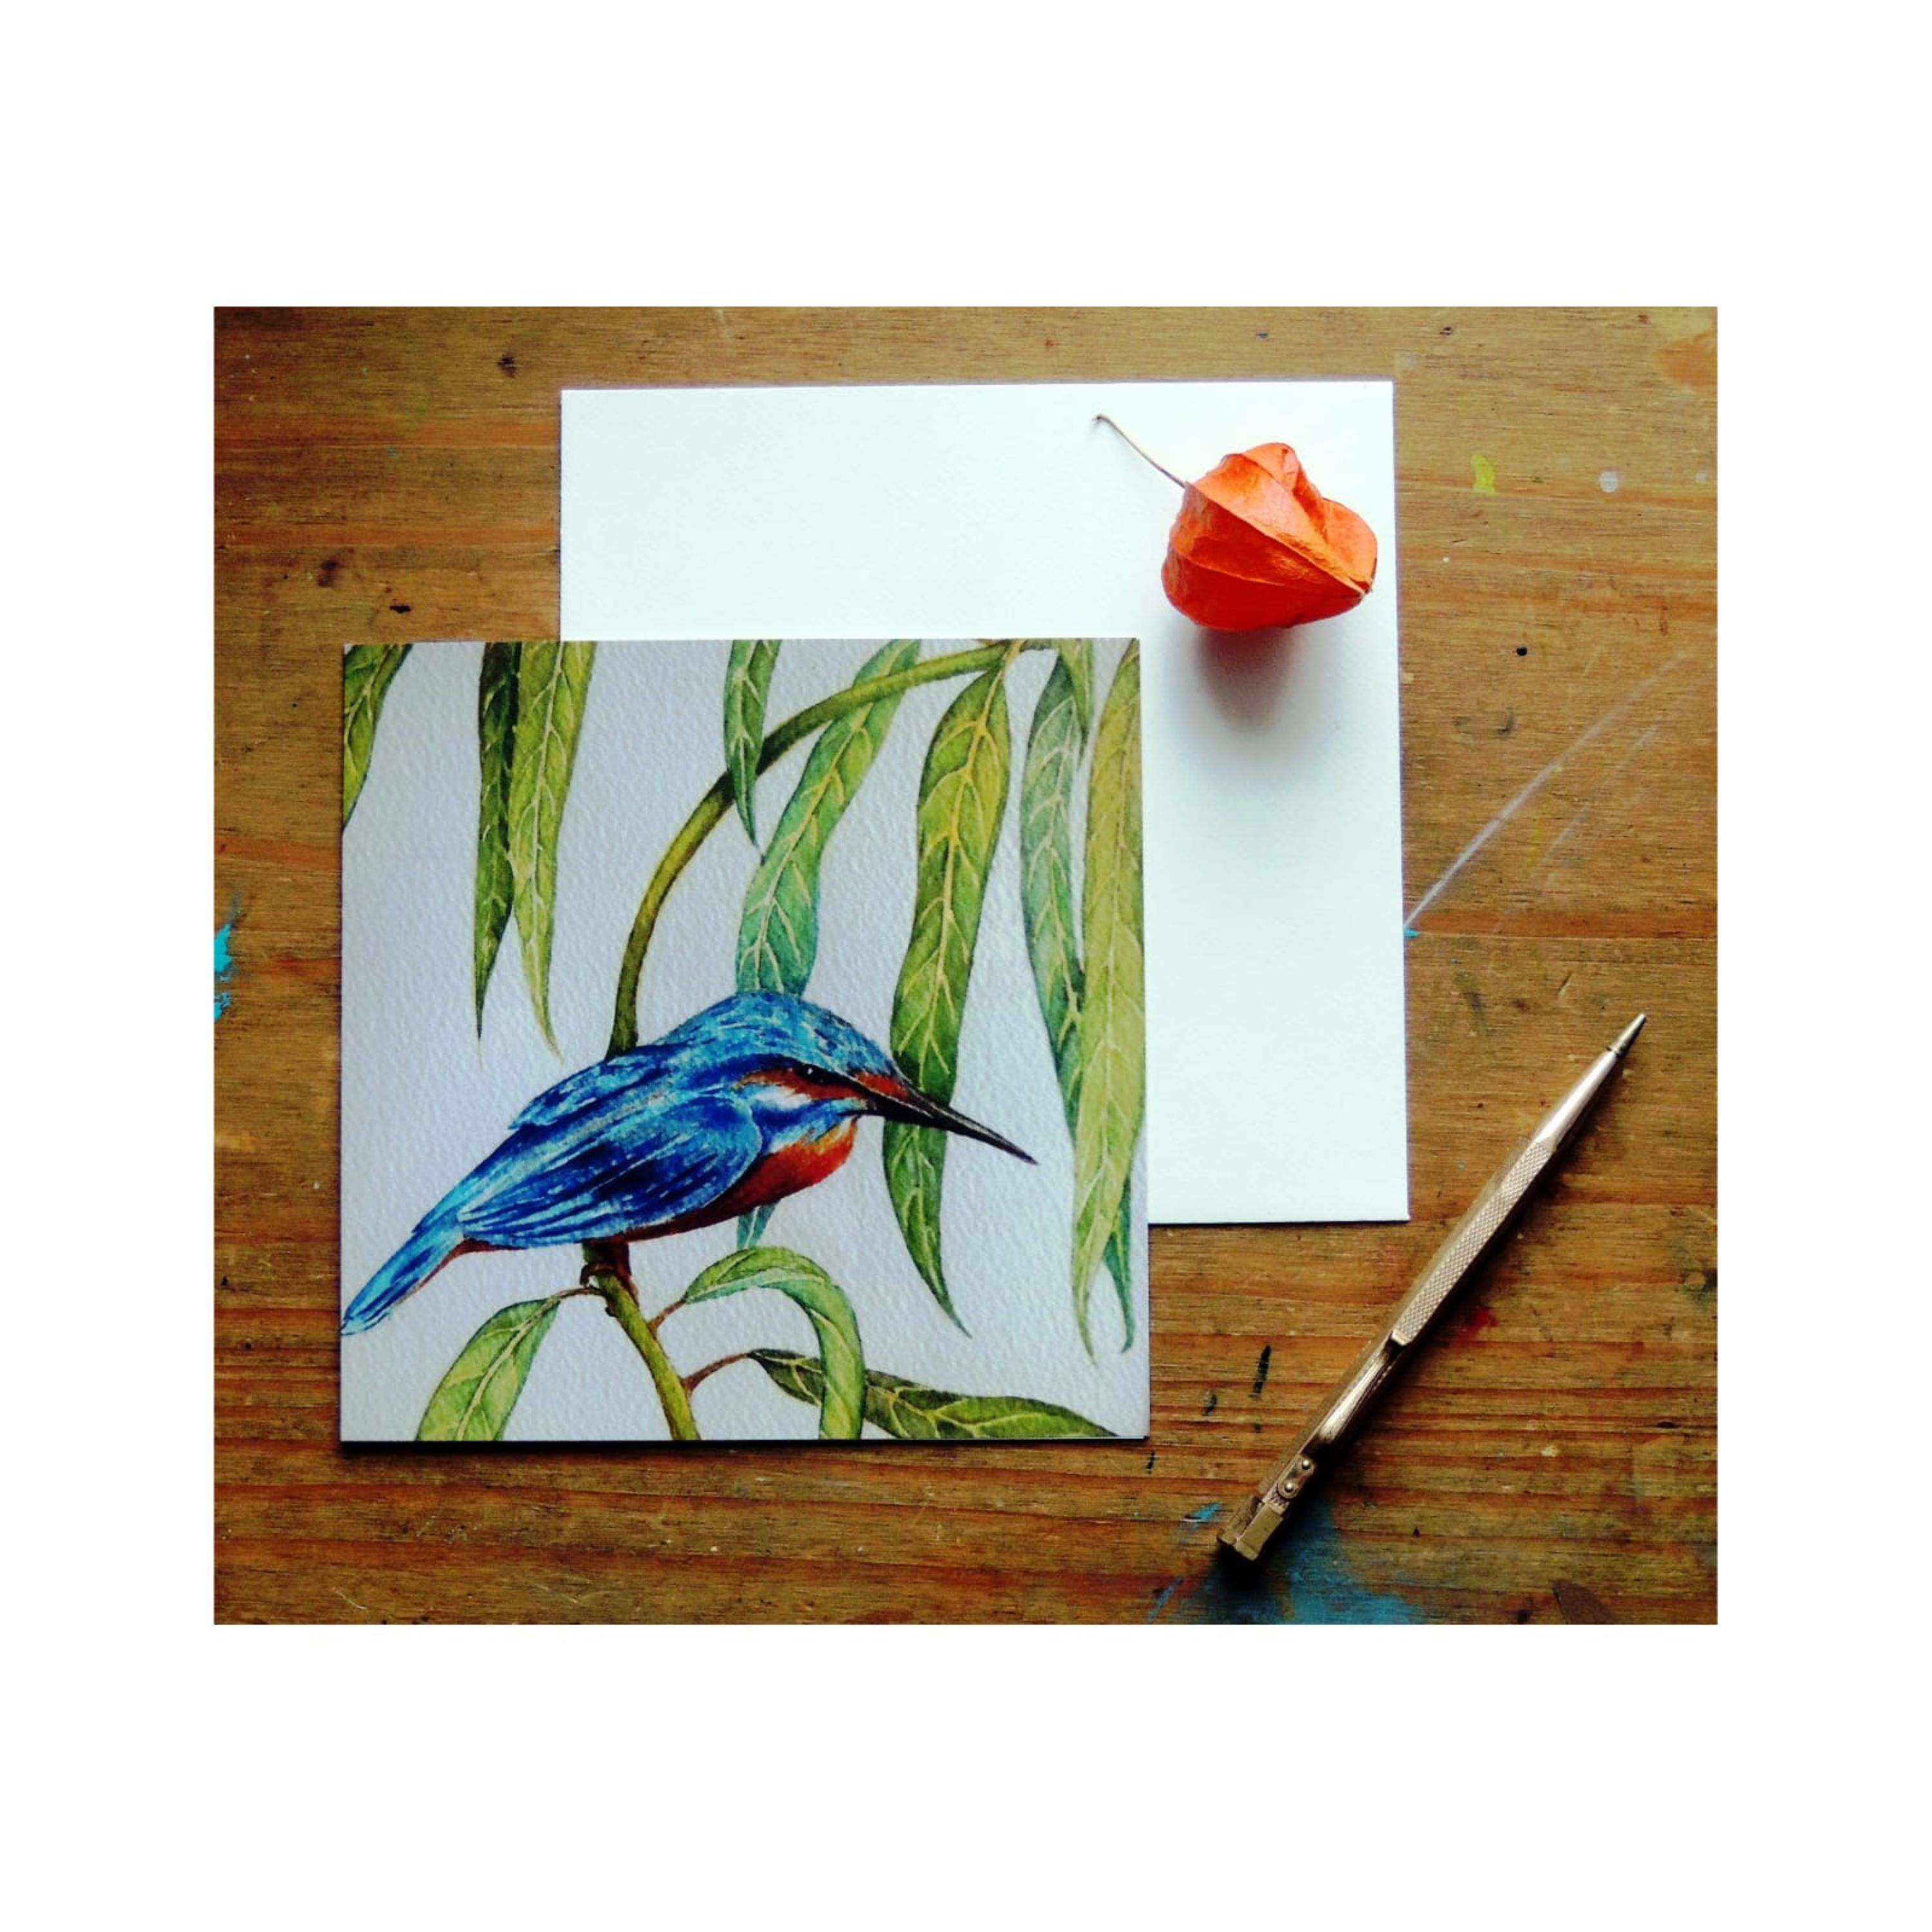 Kingfishers in Willow Tree